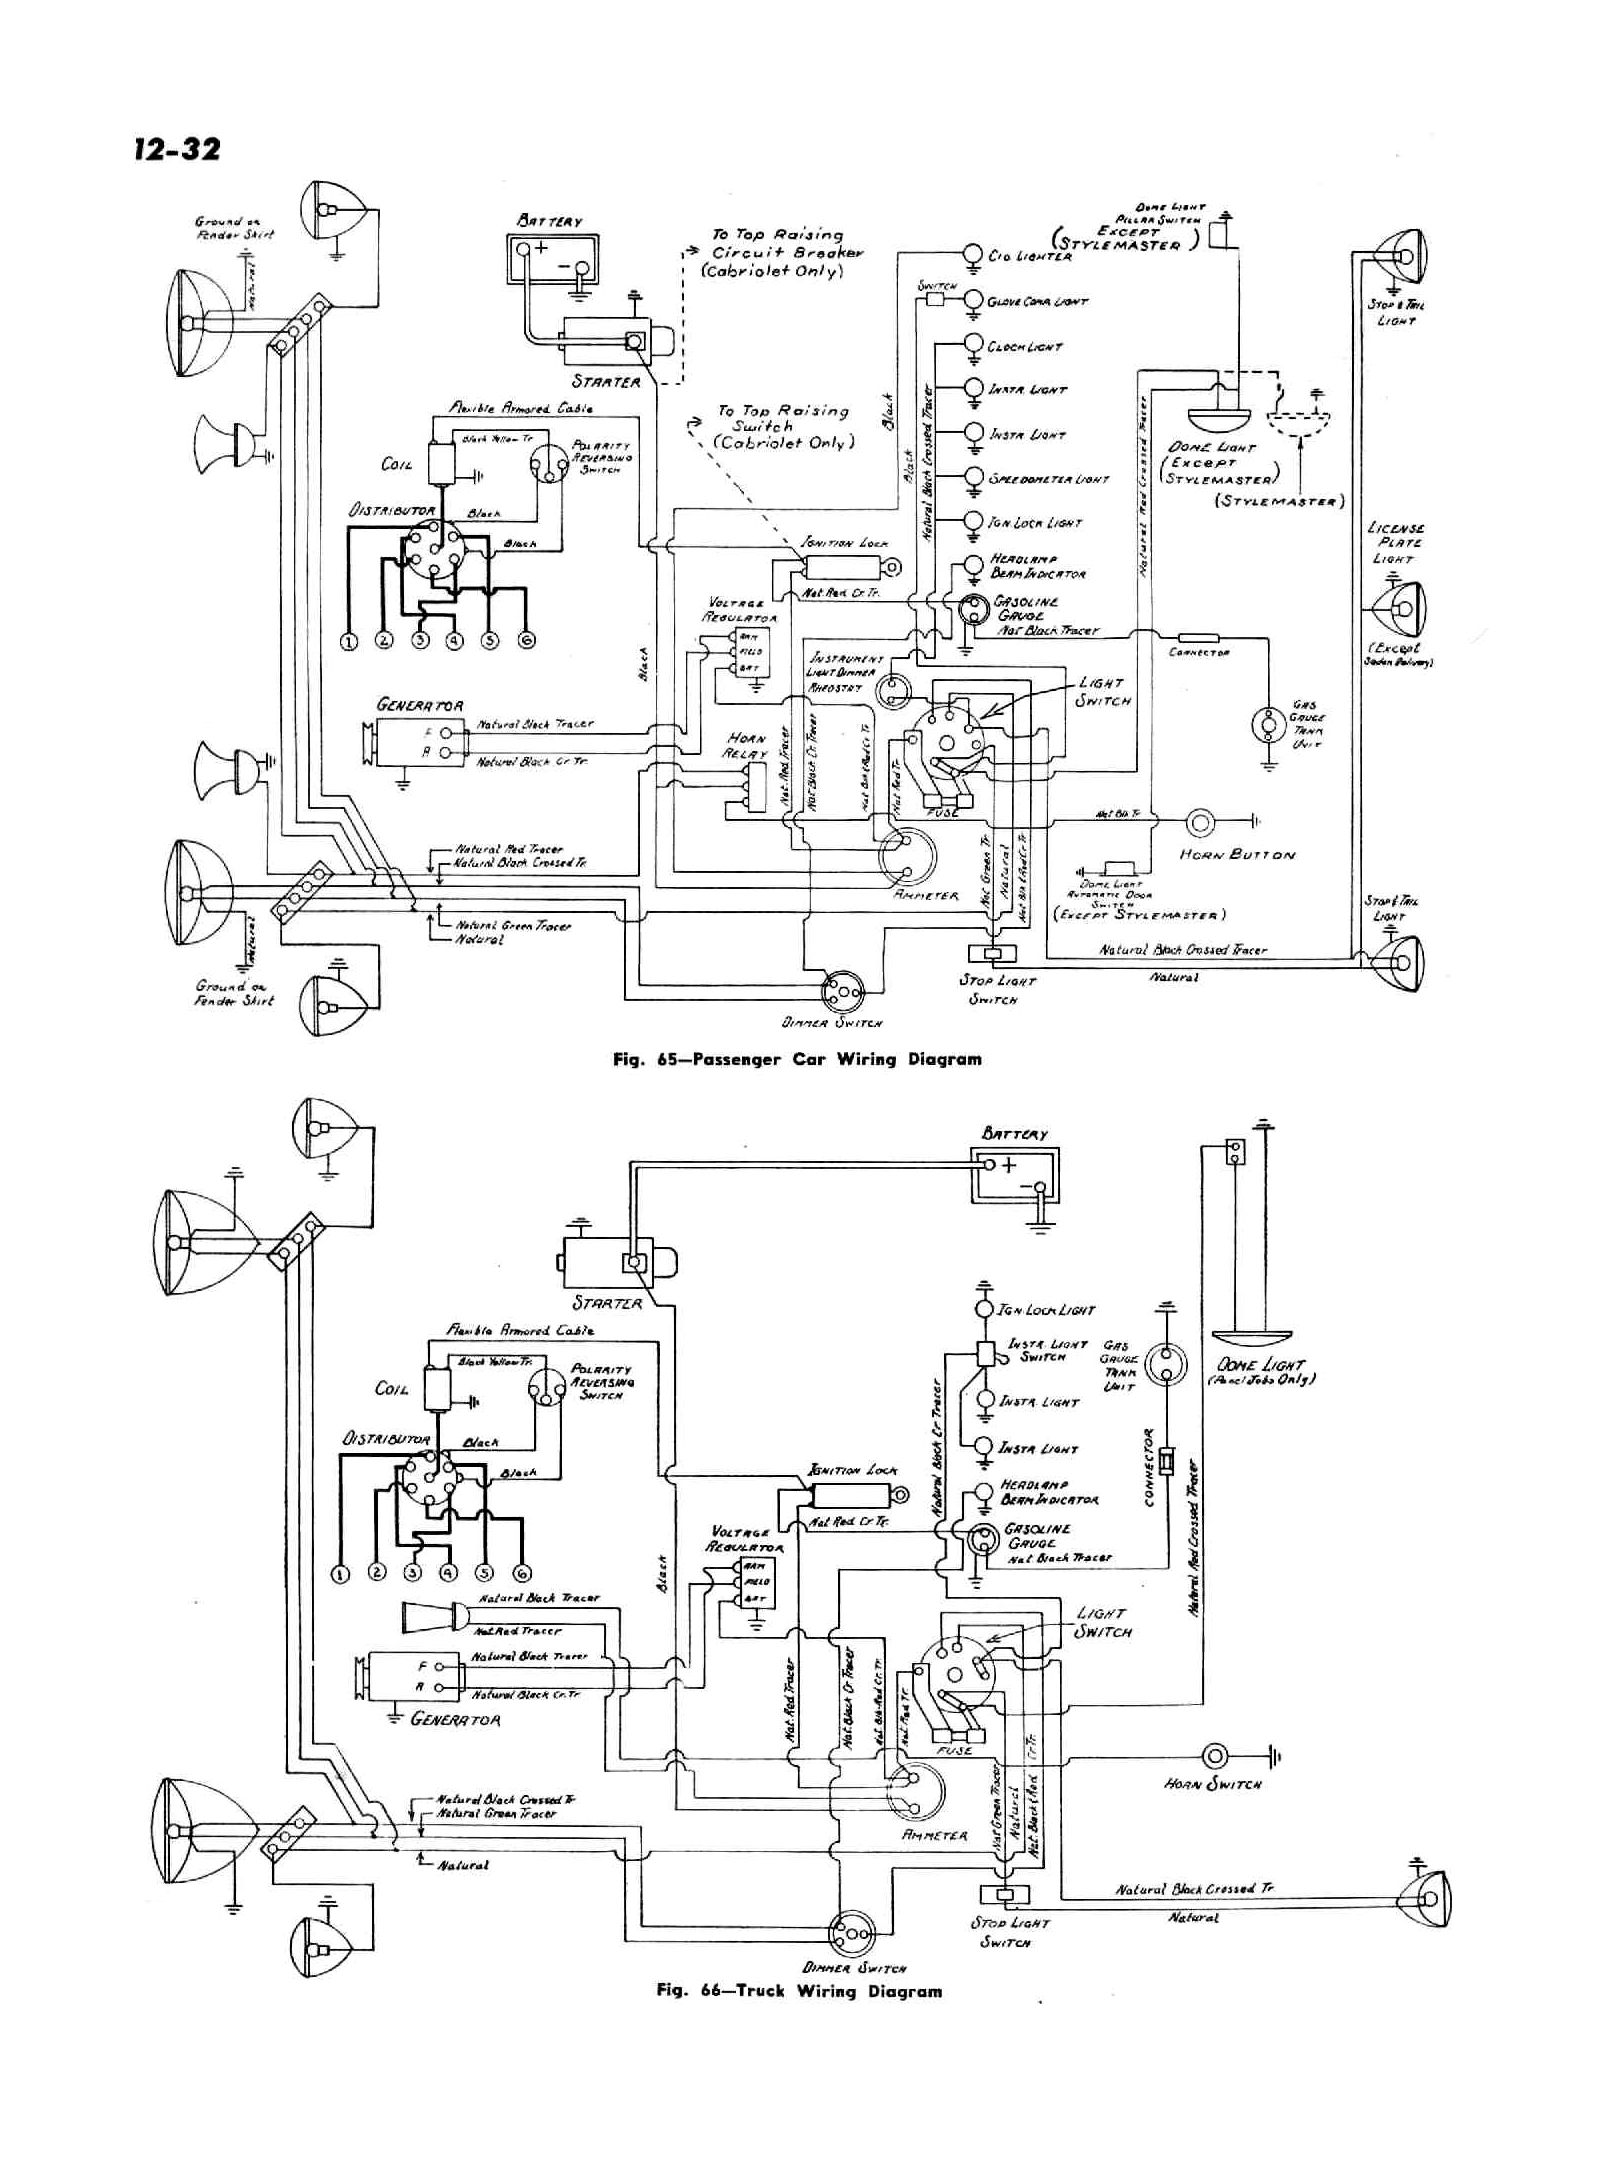 1946 chevy pickup ignition wiring diagram schematic wiring diagram \u2022 chevy wiring harness diagram chevy wiring diagrams rh chevy oldcarmanualproject com chevy alternator wiring schematic chevy truck wiring schematic